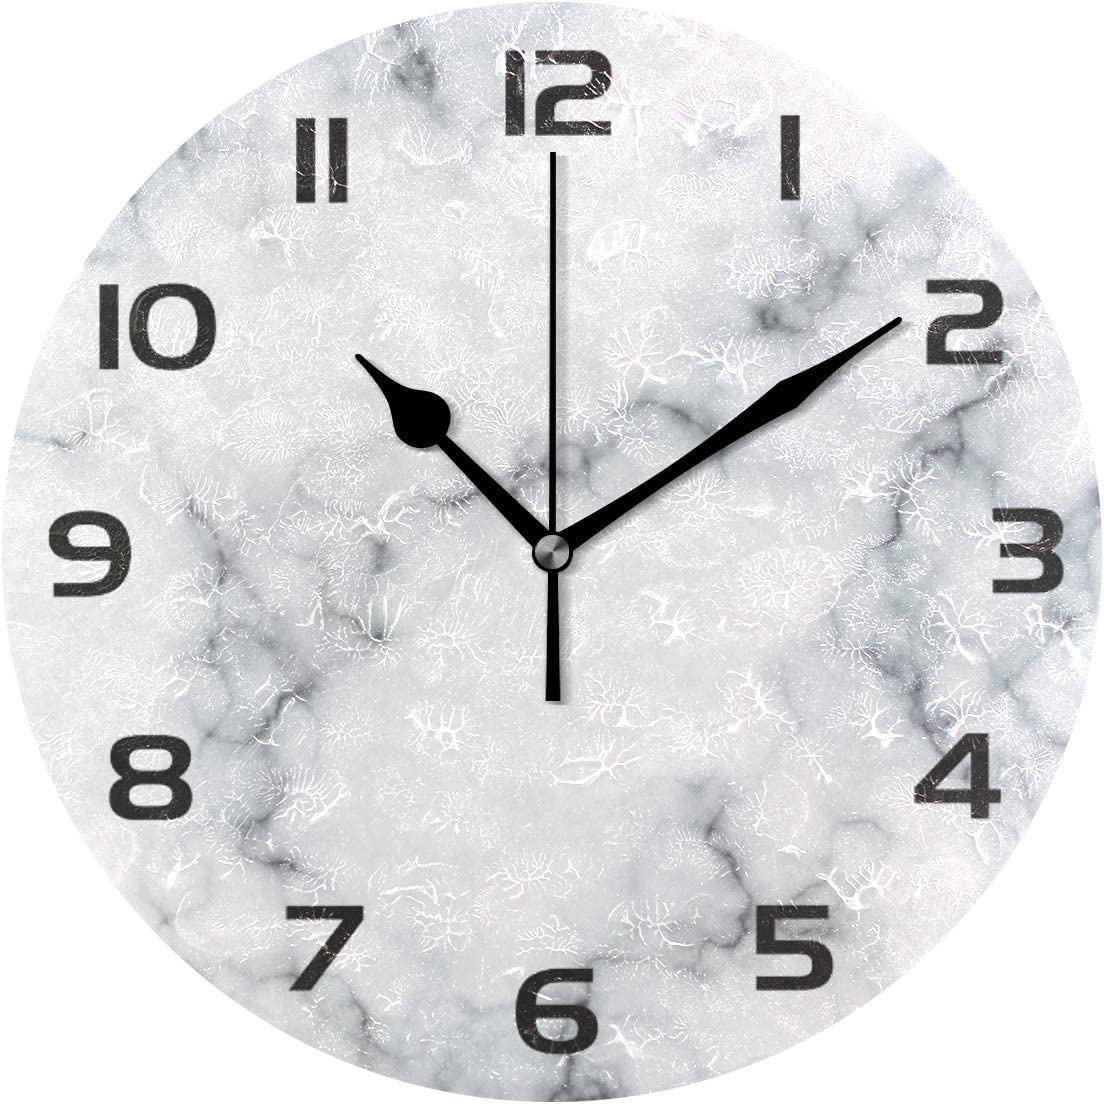 One Bear Modern White Marble Texture Wall Clock, Silent Non Ticking Battery Operated Vintage Round Clocks for Kitchen Home Office School Decorative